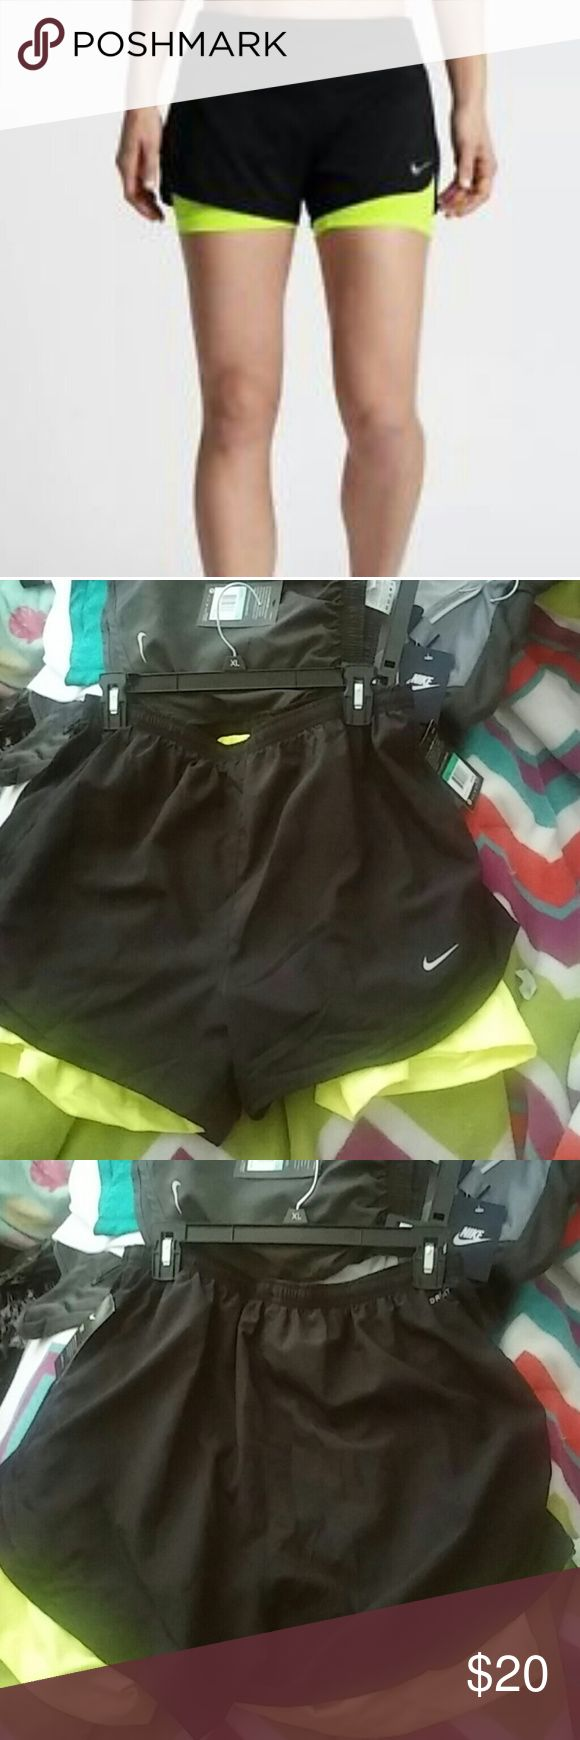 Nwt nike 2 in 1 running shorts This is a new pair of women's Nike two in one running shorts black with bottom neon yellow shorts Nike Shorts